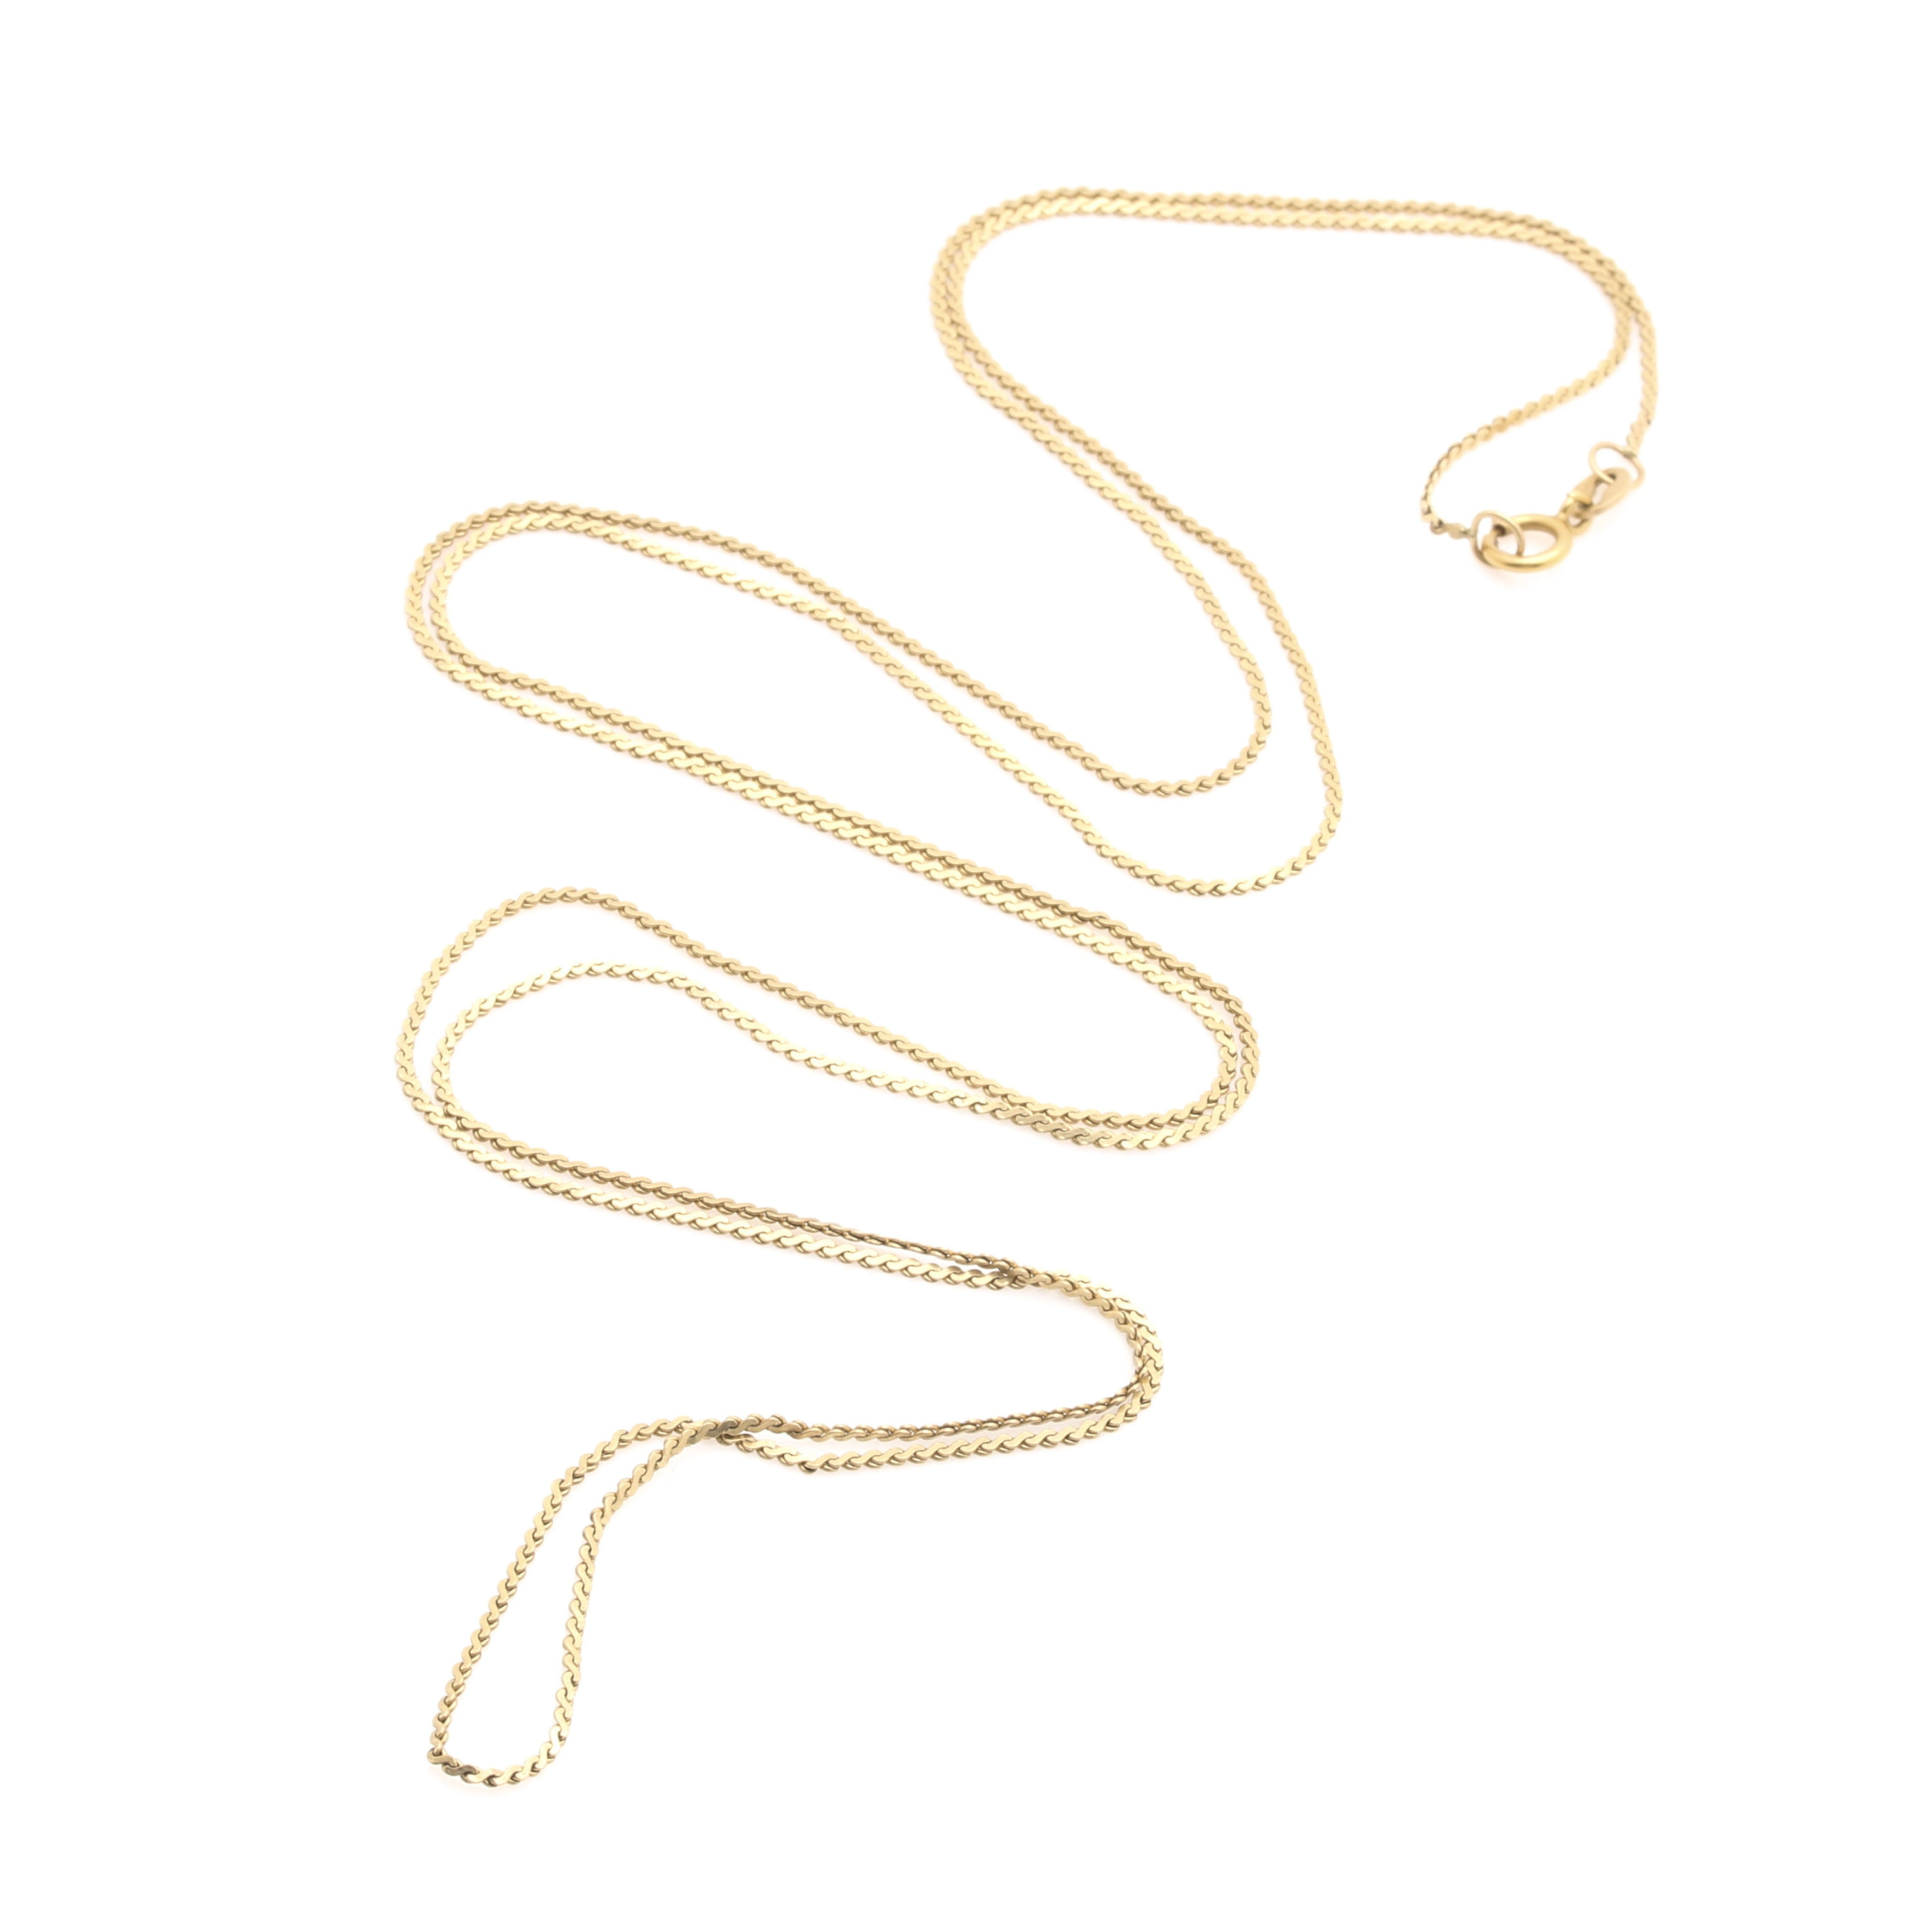 14K Yellow Gold Serpentine Chain Necklace